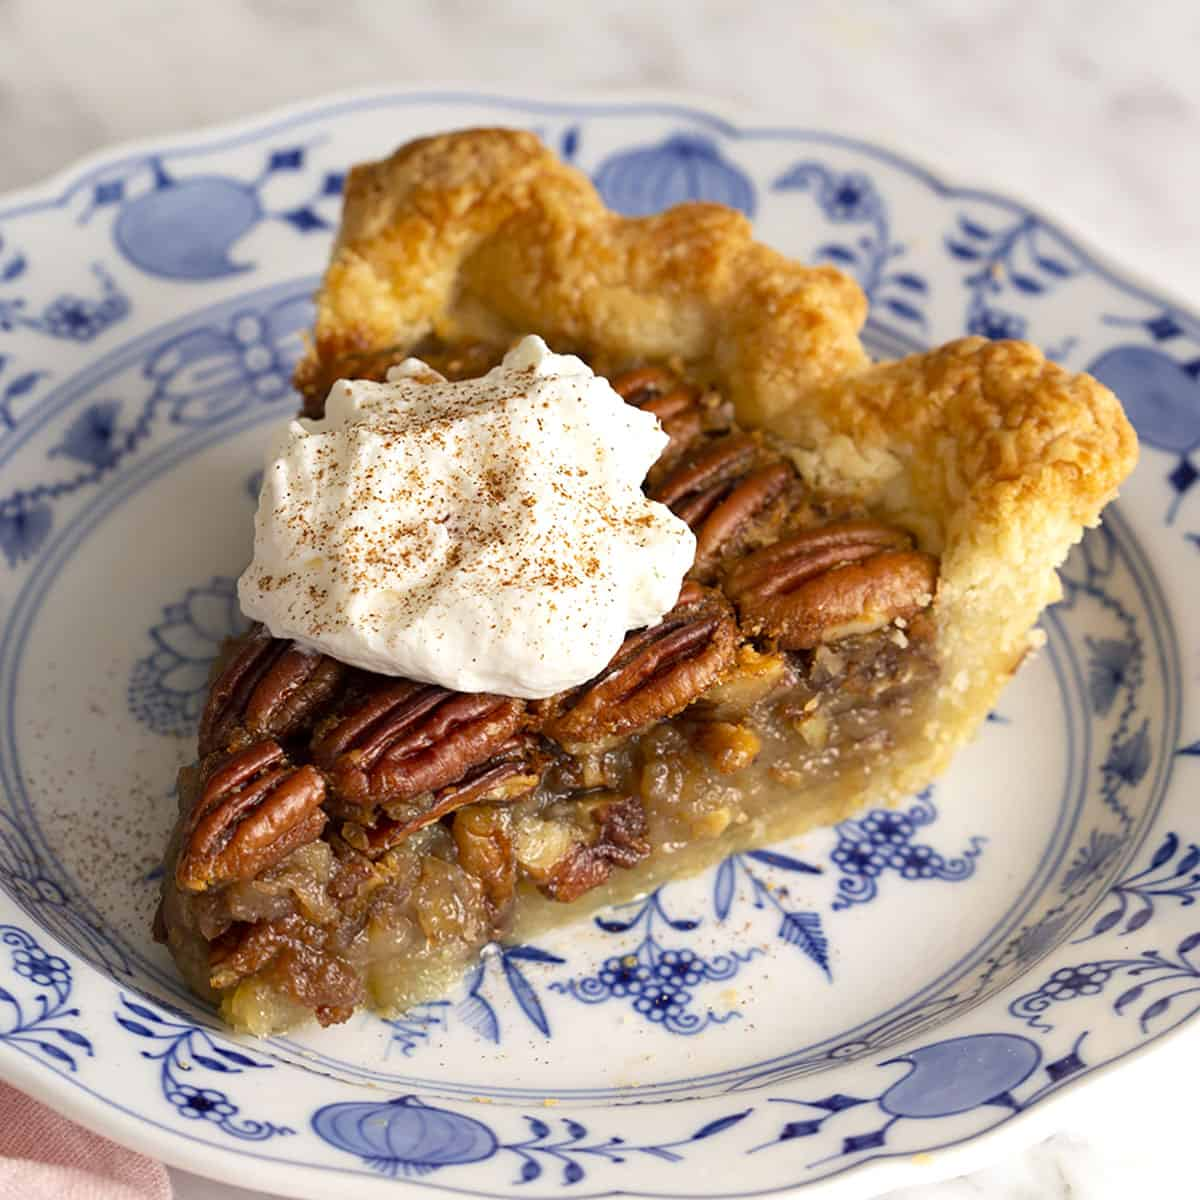 A piece of pecan pie on a blue and white plate.